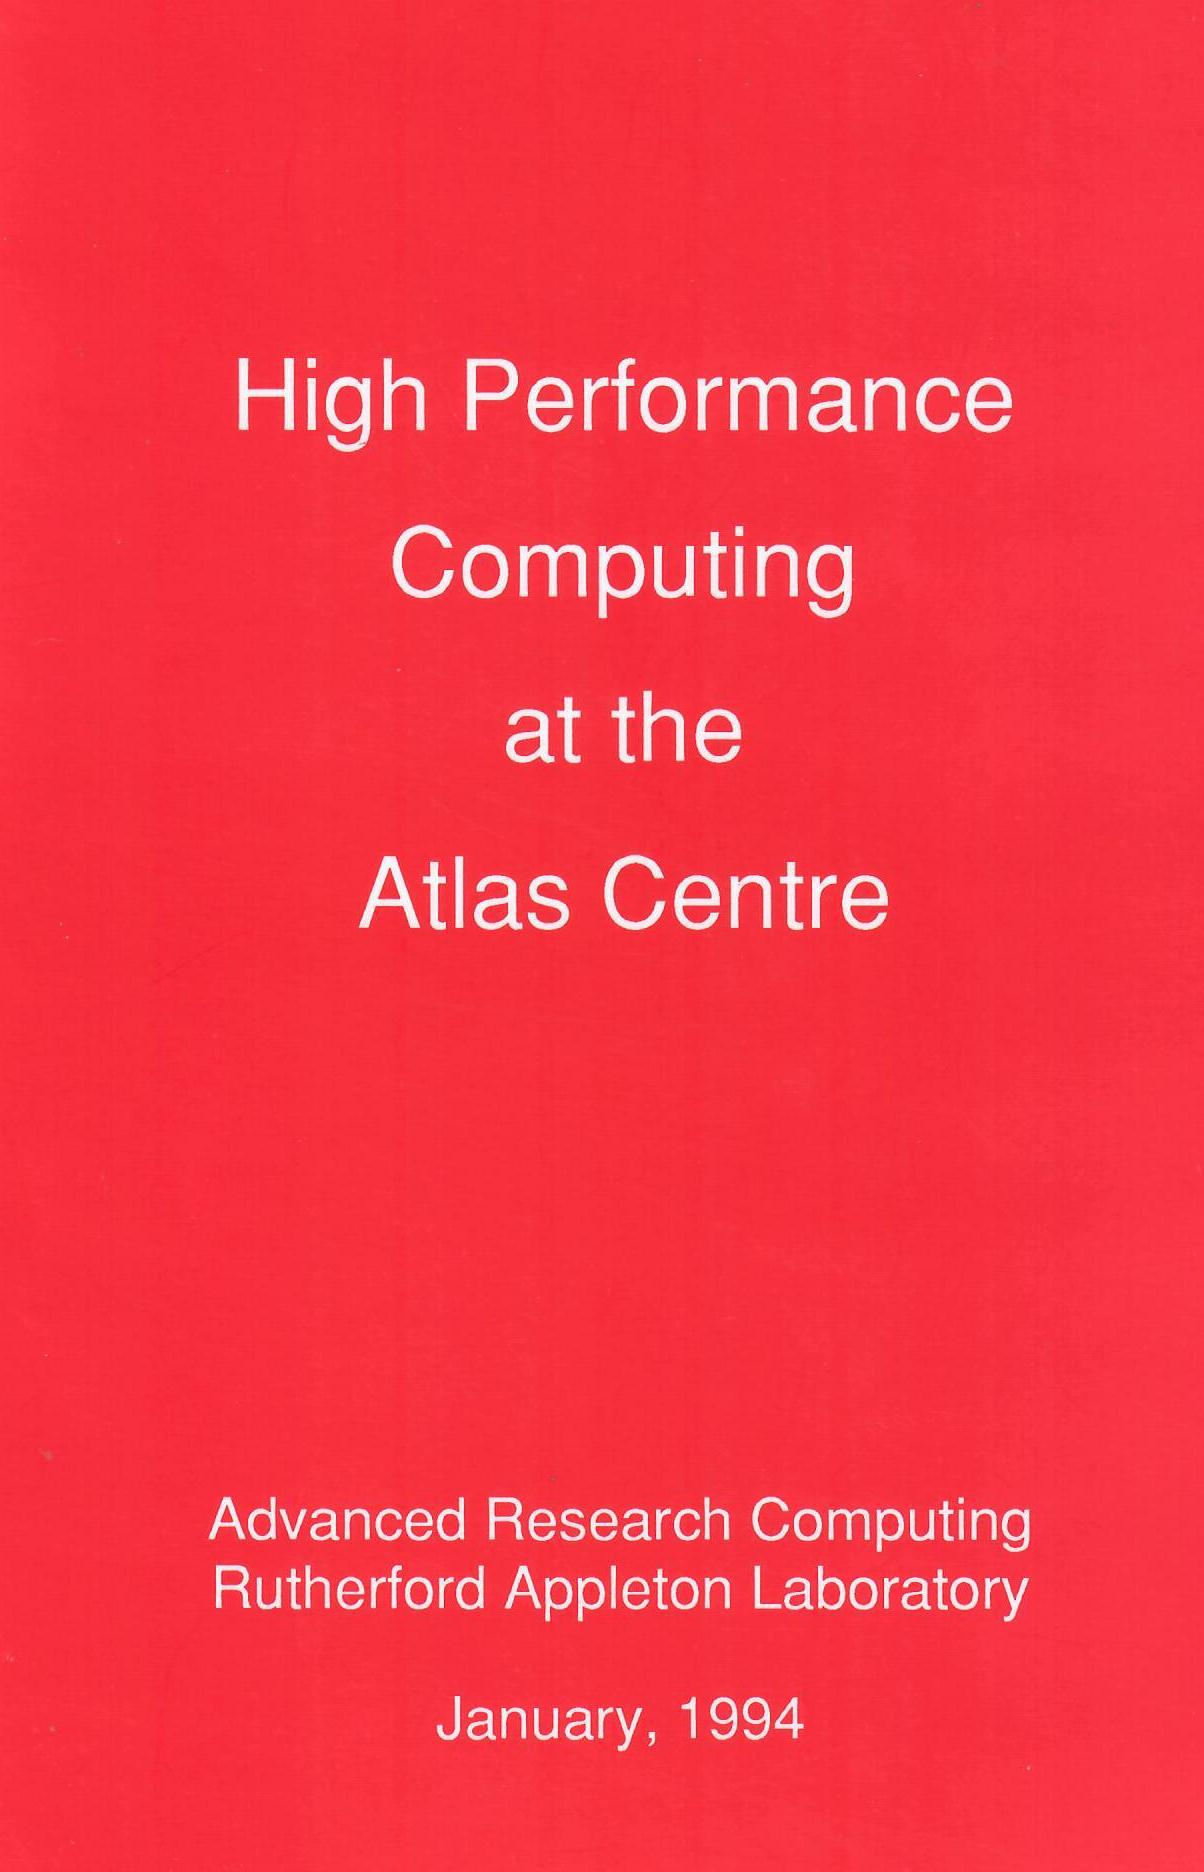 b369636d1be0 High Performance Computing at the Atlas Centre